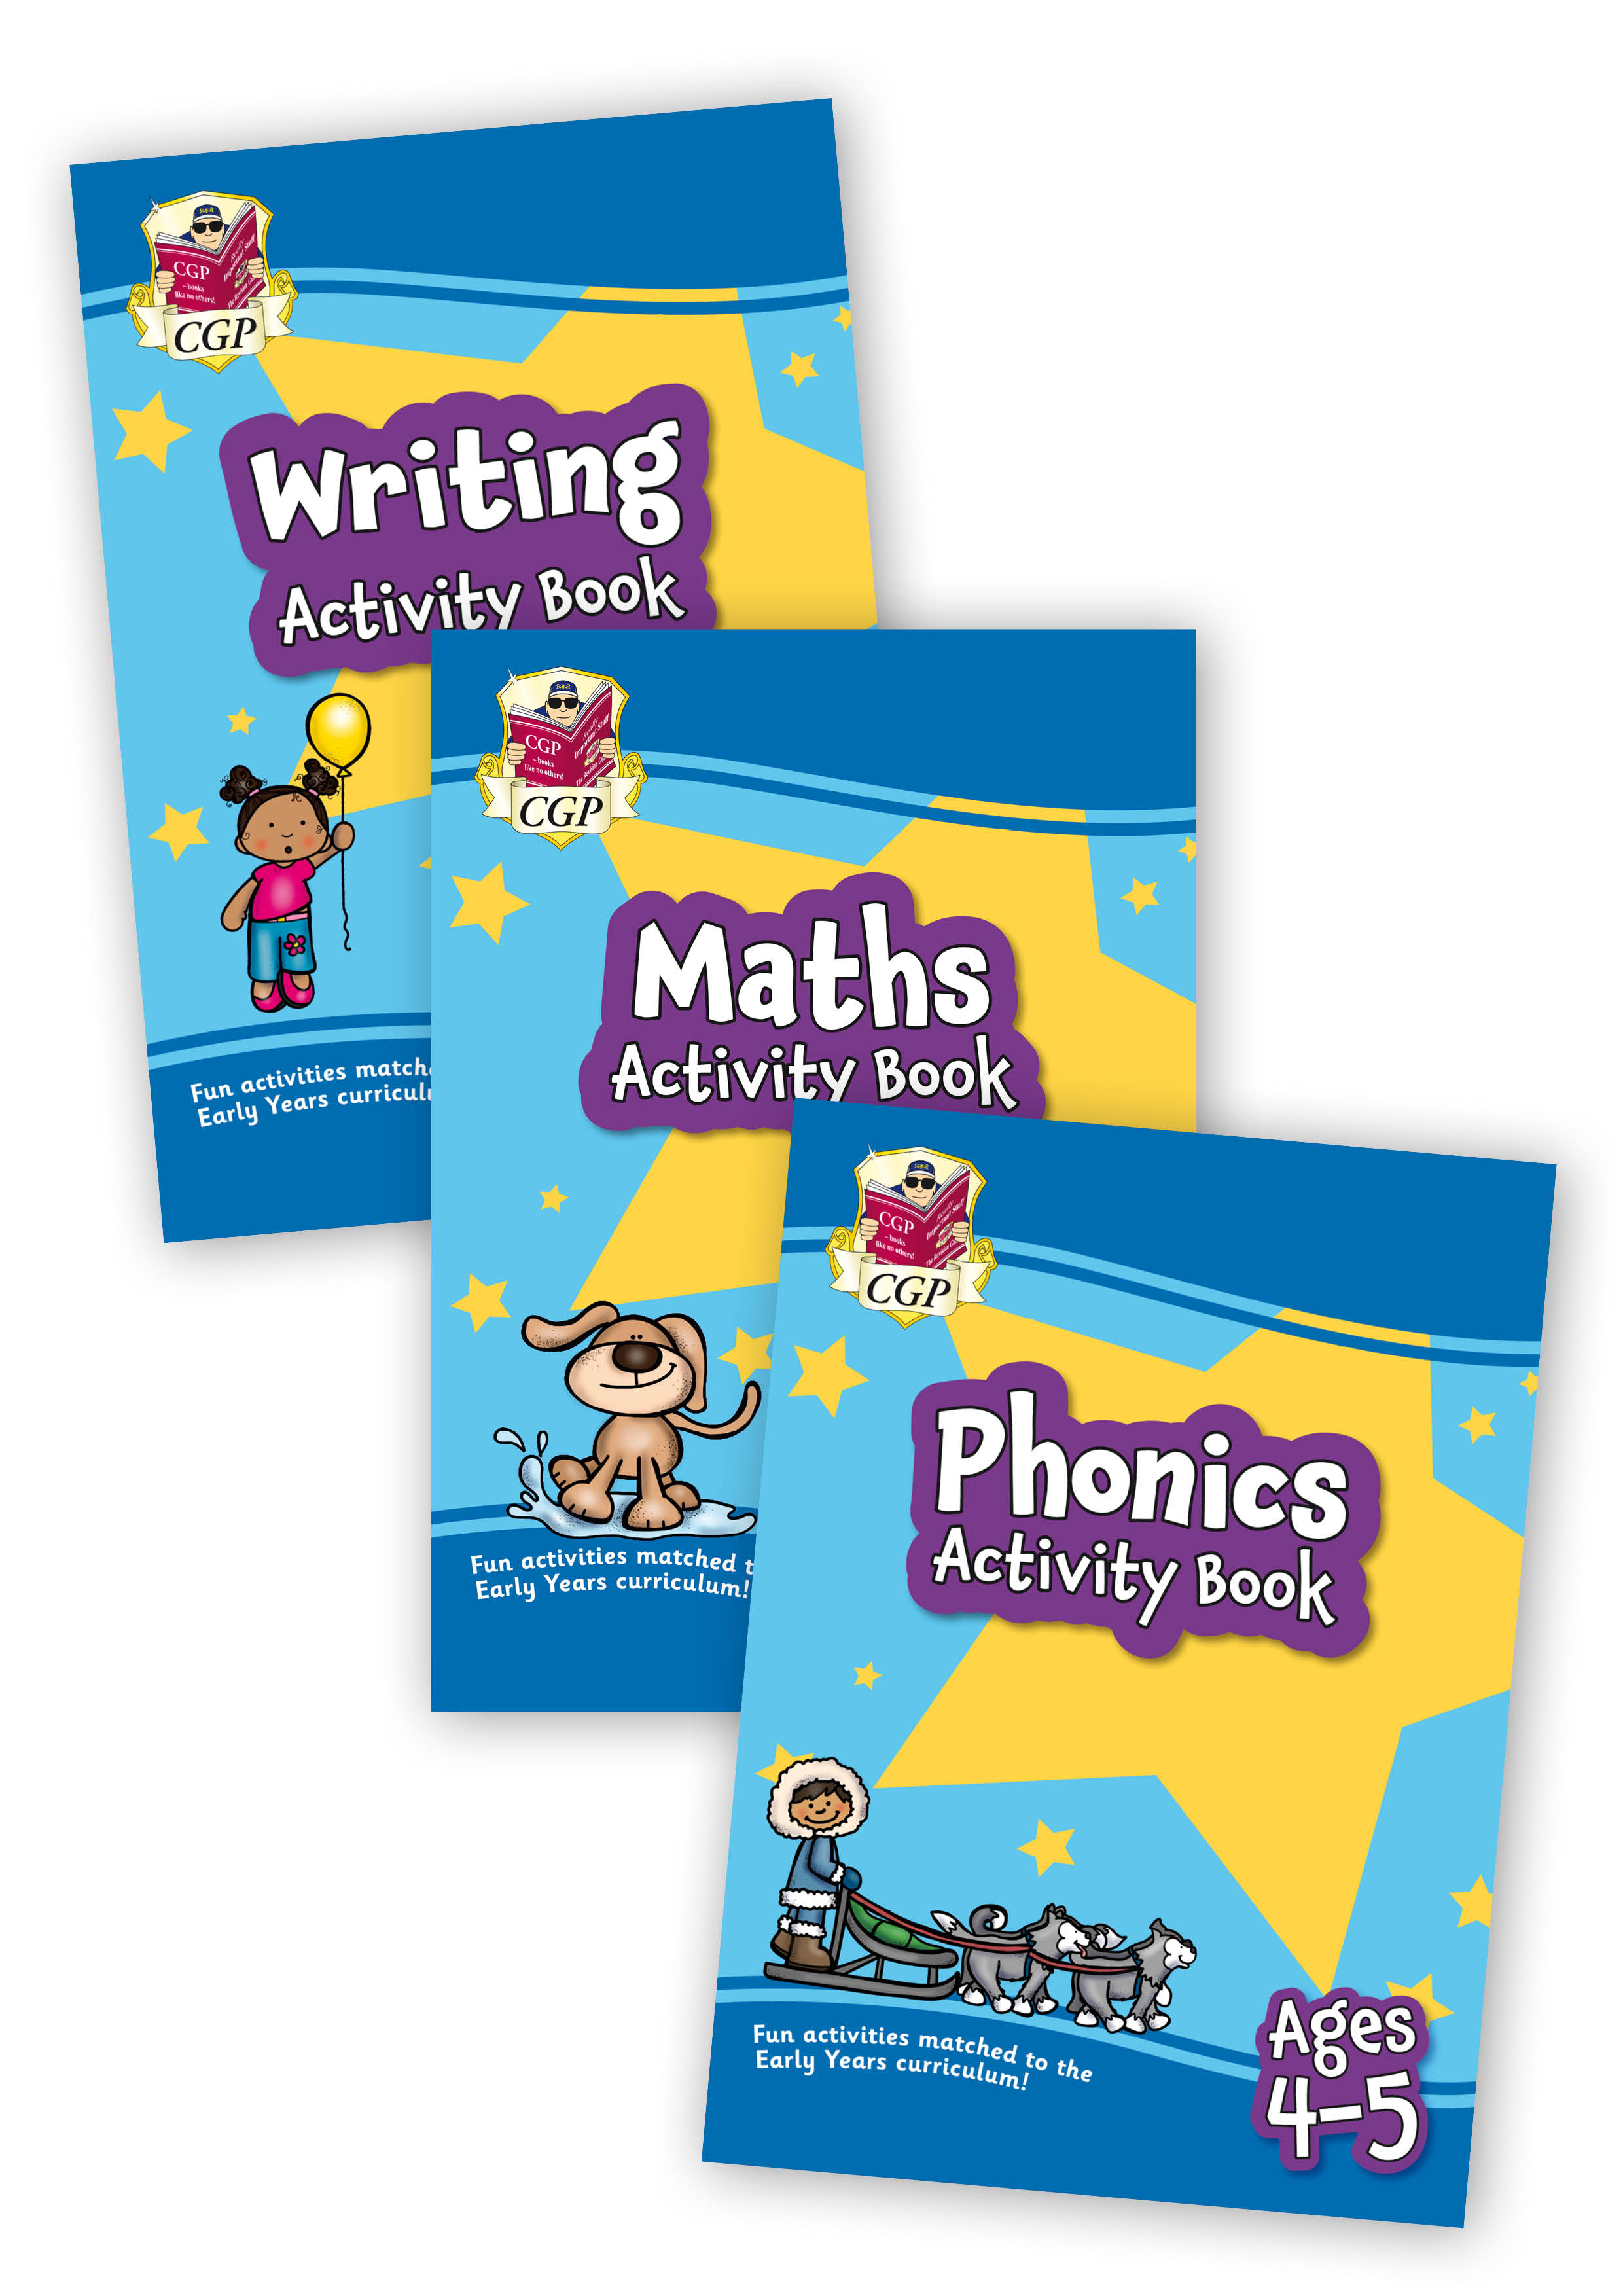 EMPFRB01 - New Home Learning Activity Books - 3-book bundle: Early Years Ages 4-5